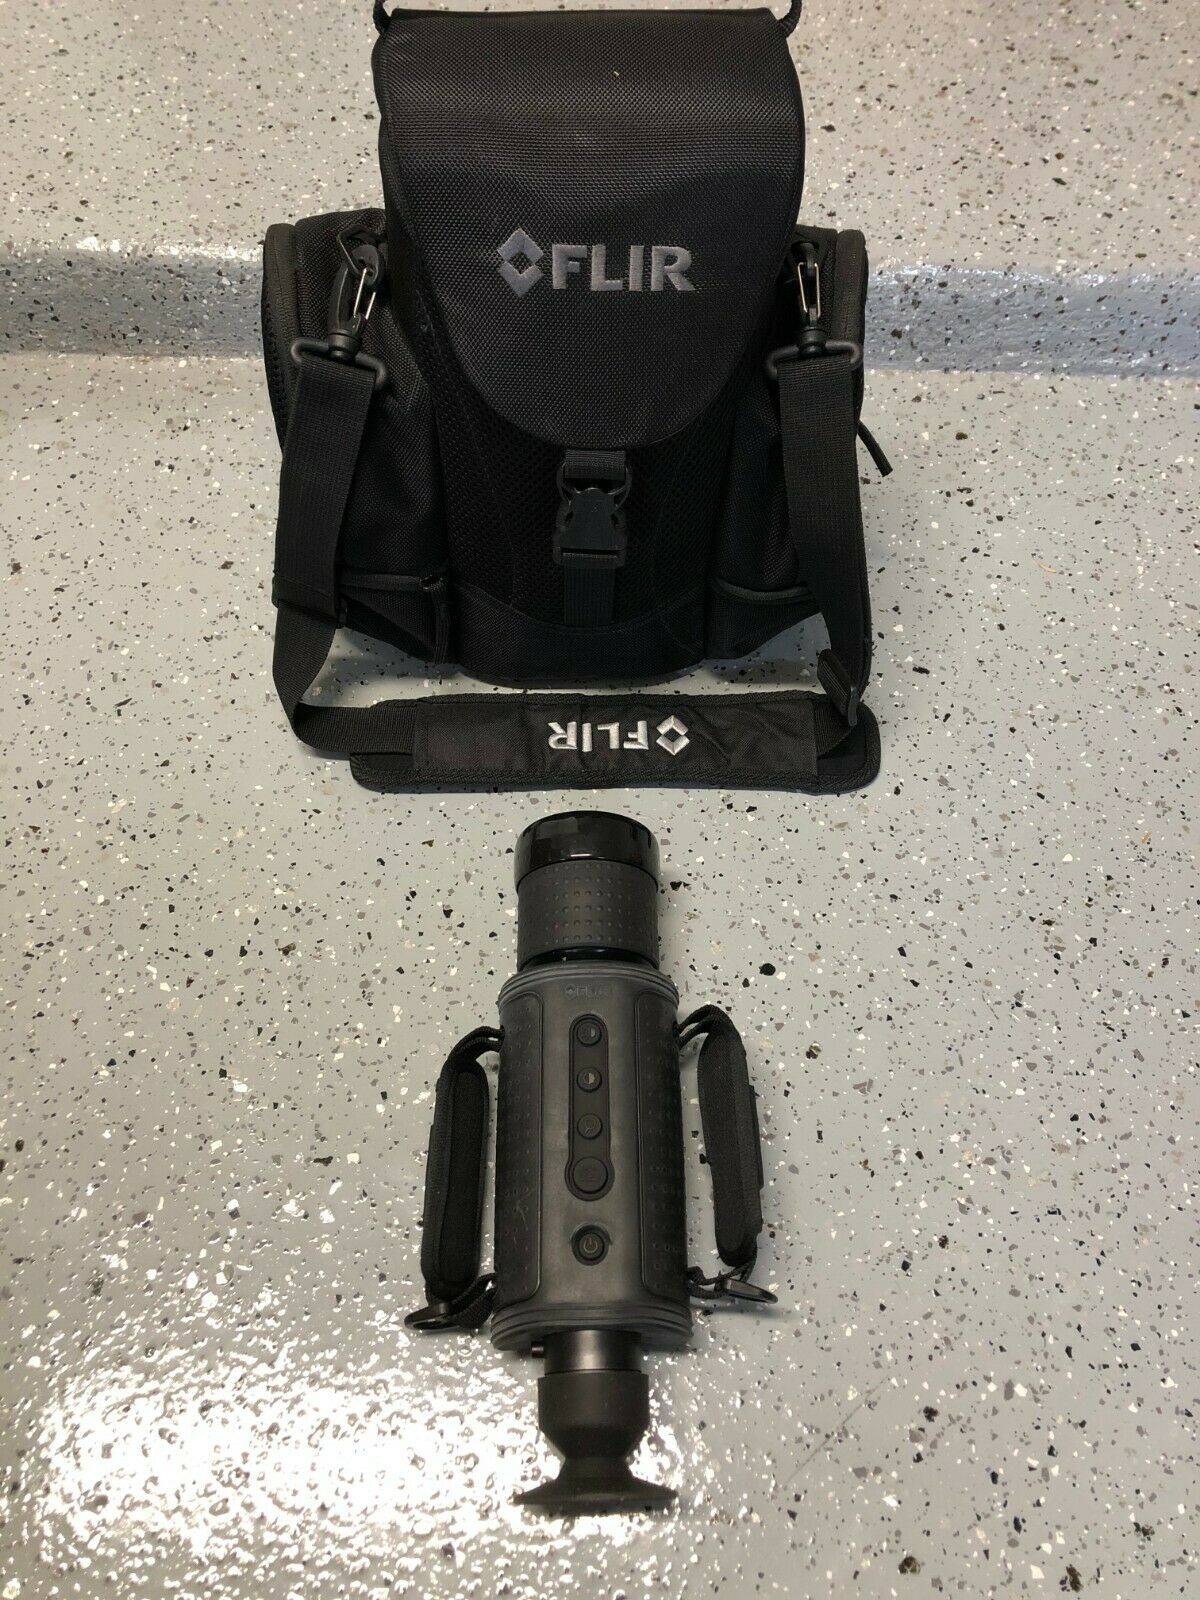 FLIR HS-307 Command 431-0004-11-00 Thermal Imager 65mm Lens NTSC 30 Hz - $2,999.99